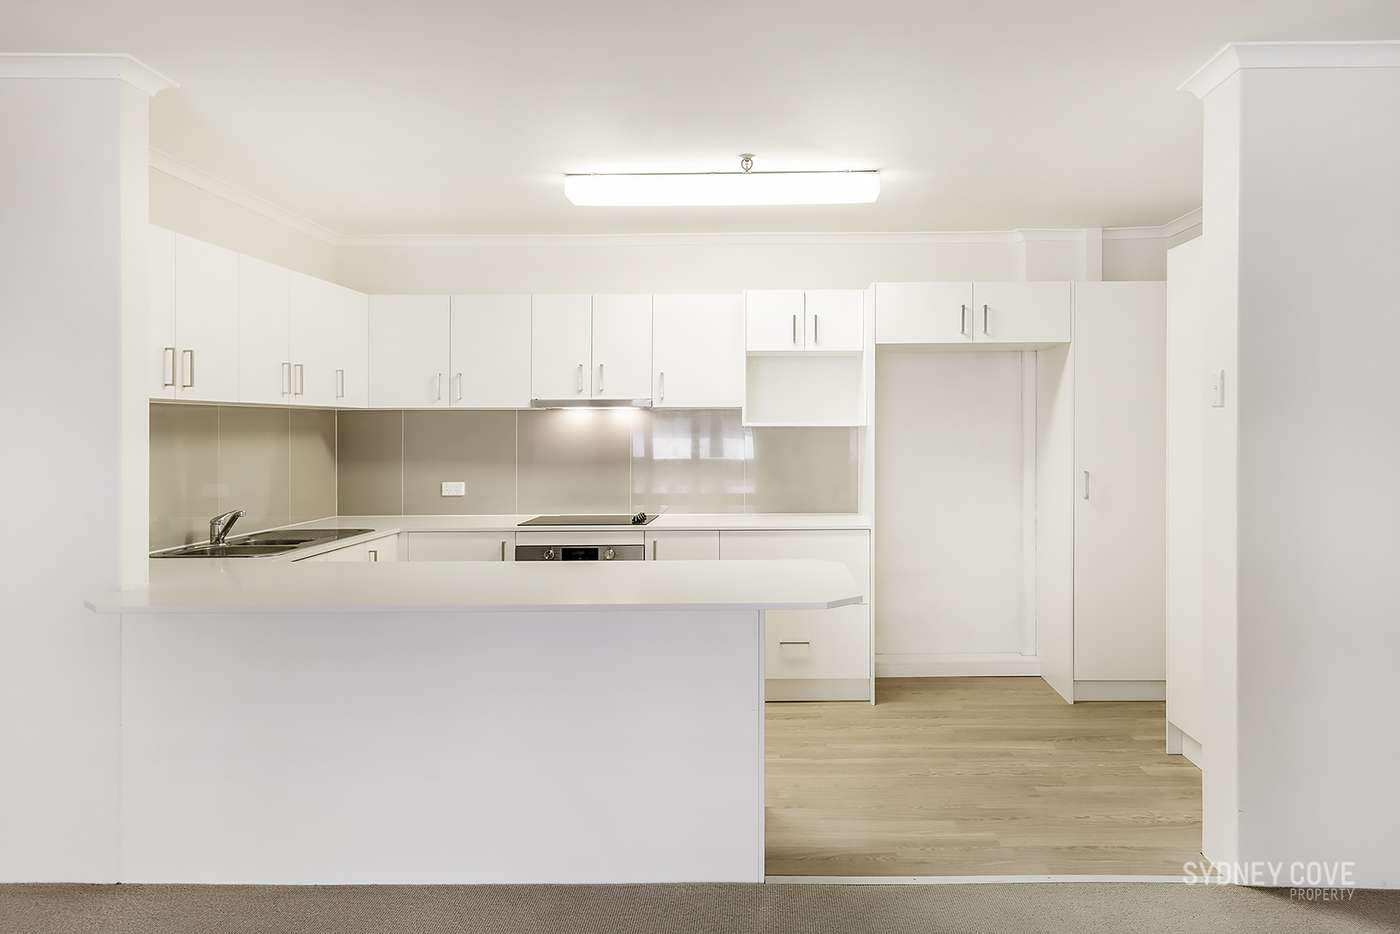 Main view of Homely apartment listing, 25 Market St, Sydney NSW 2000